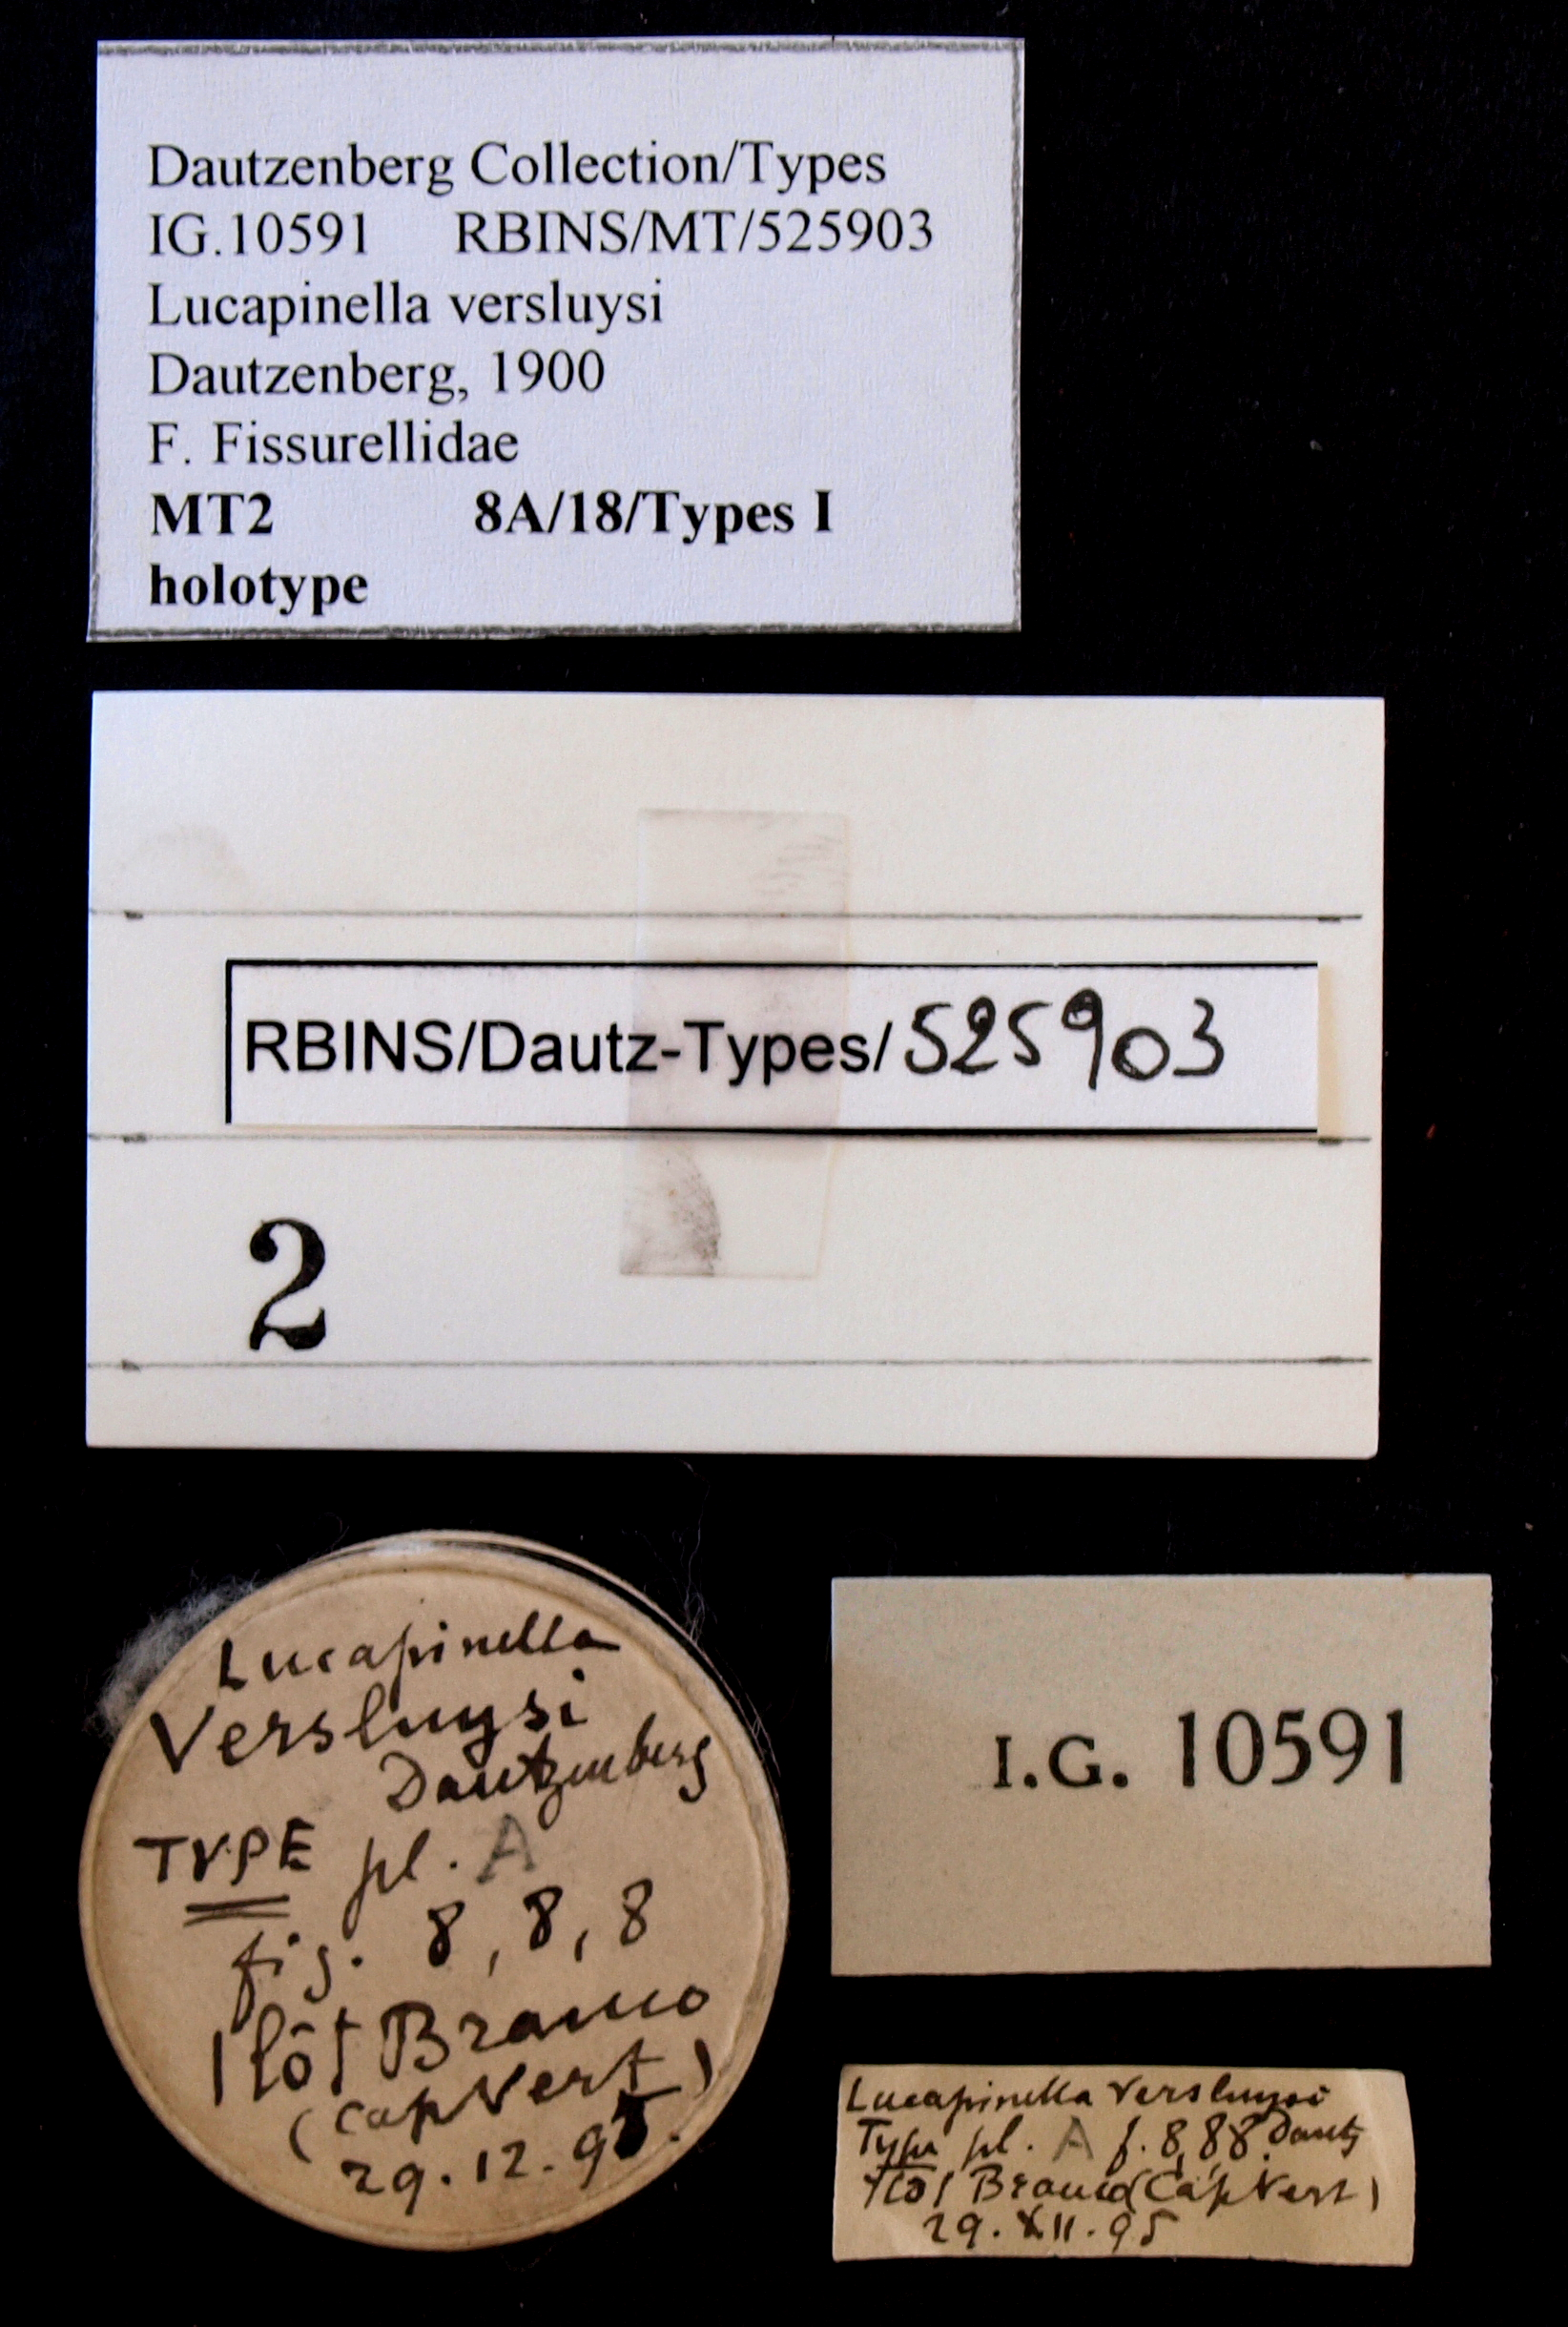 BE-RBINS-INV HOLOTYPE MT 2 Lucapinella versluysi LABELS.jpg